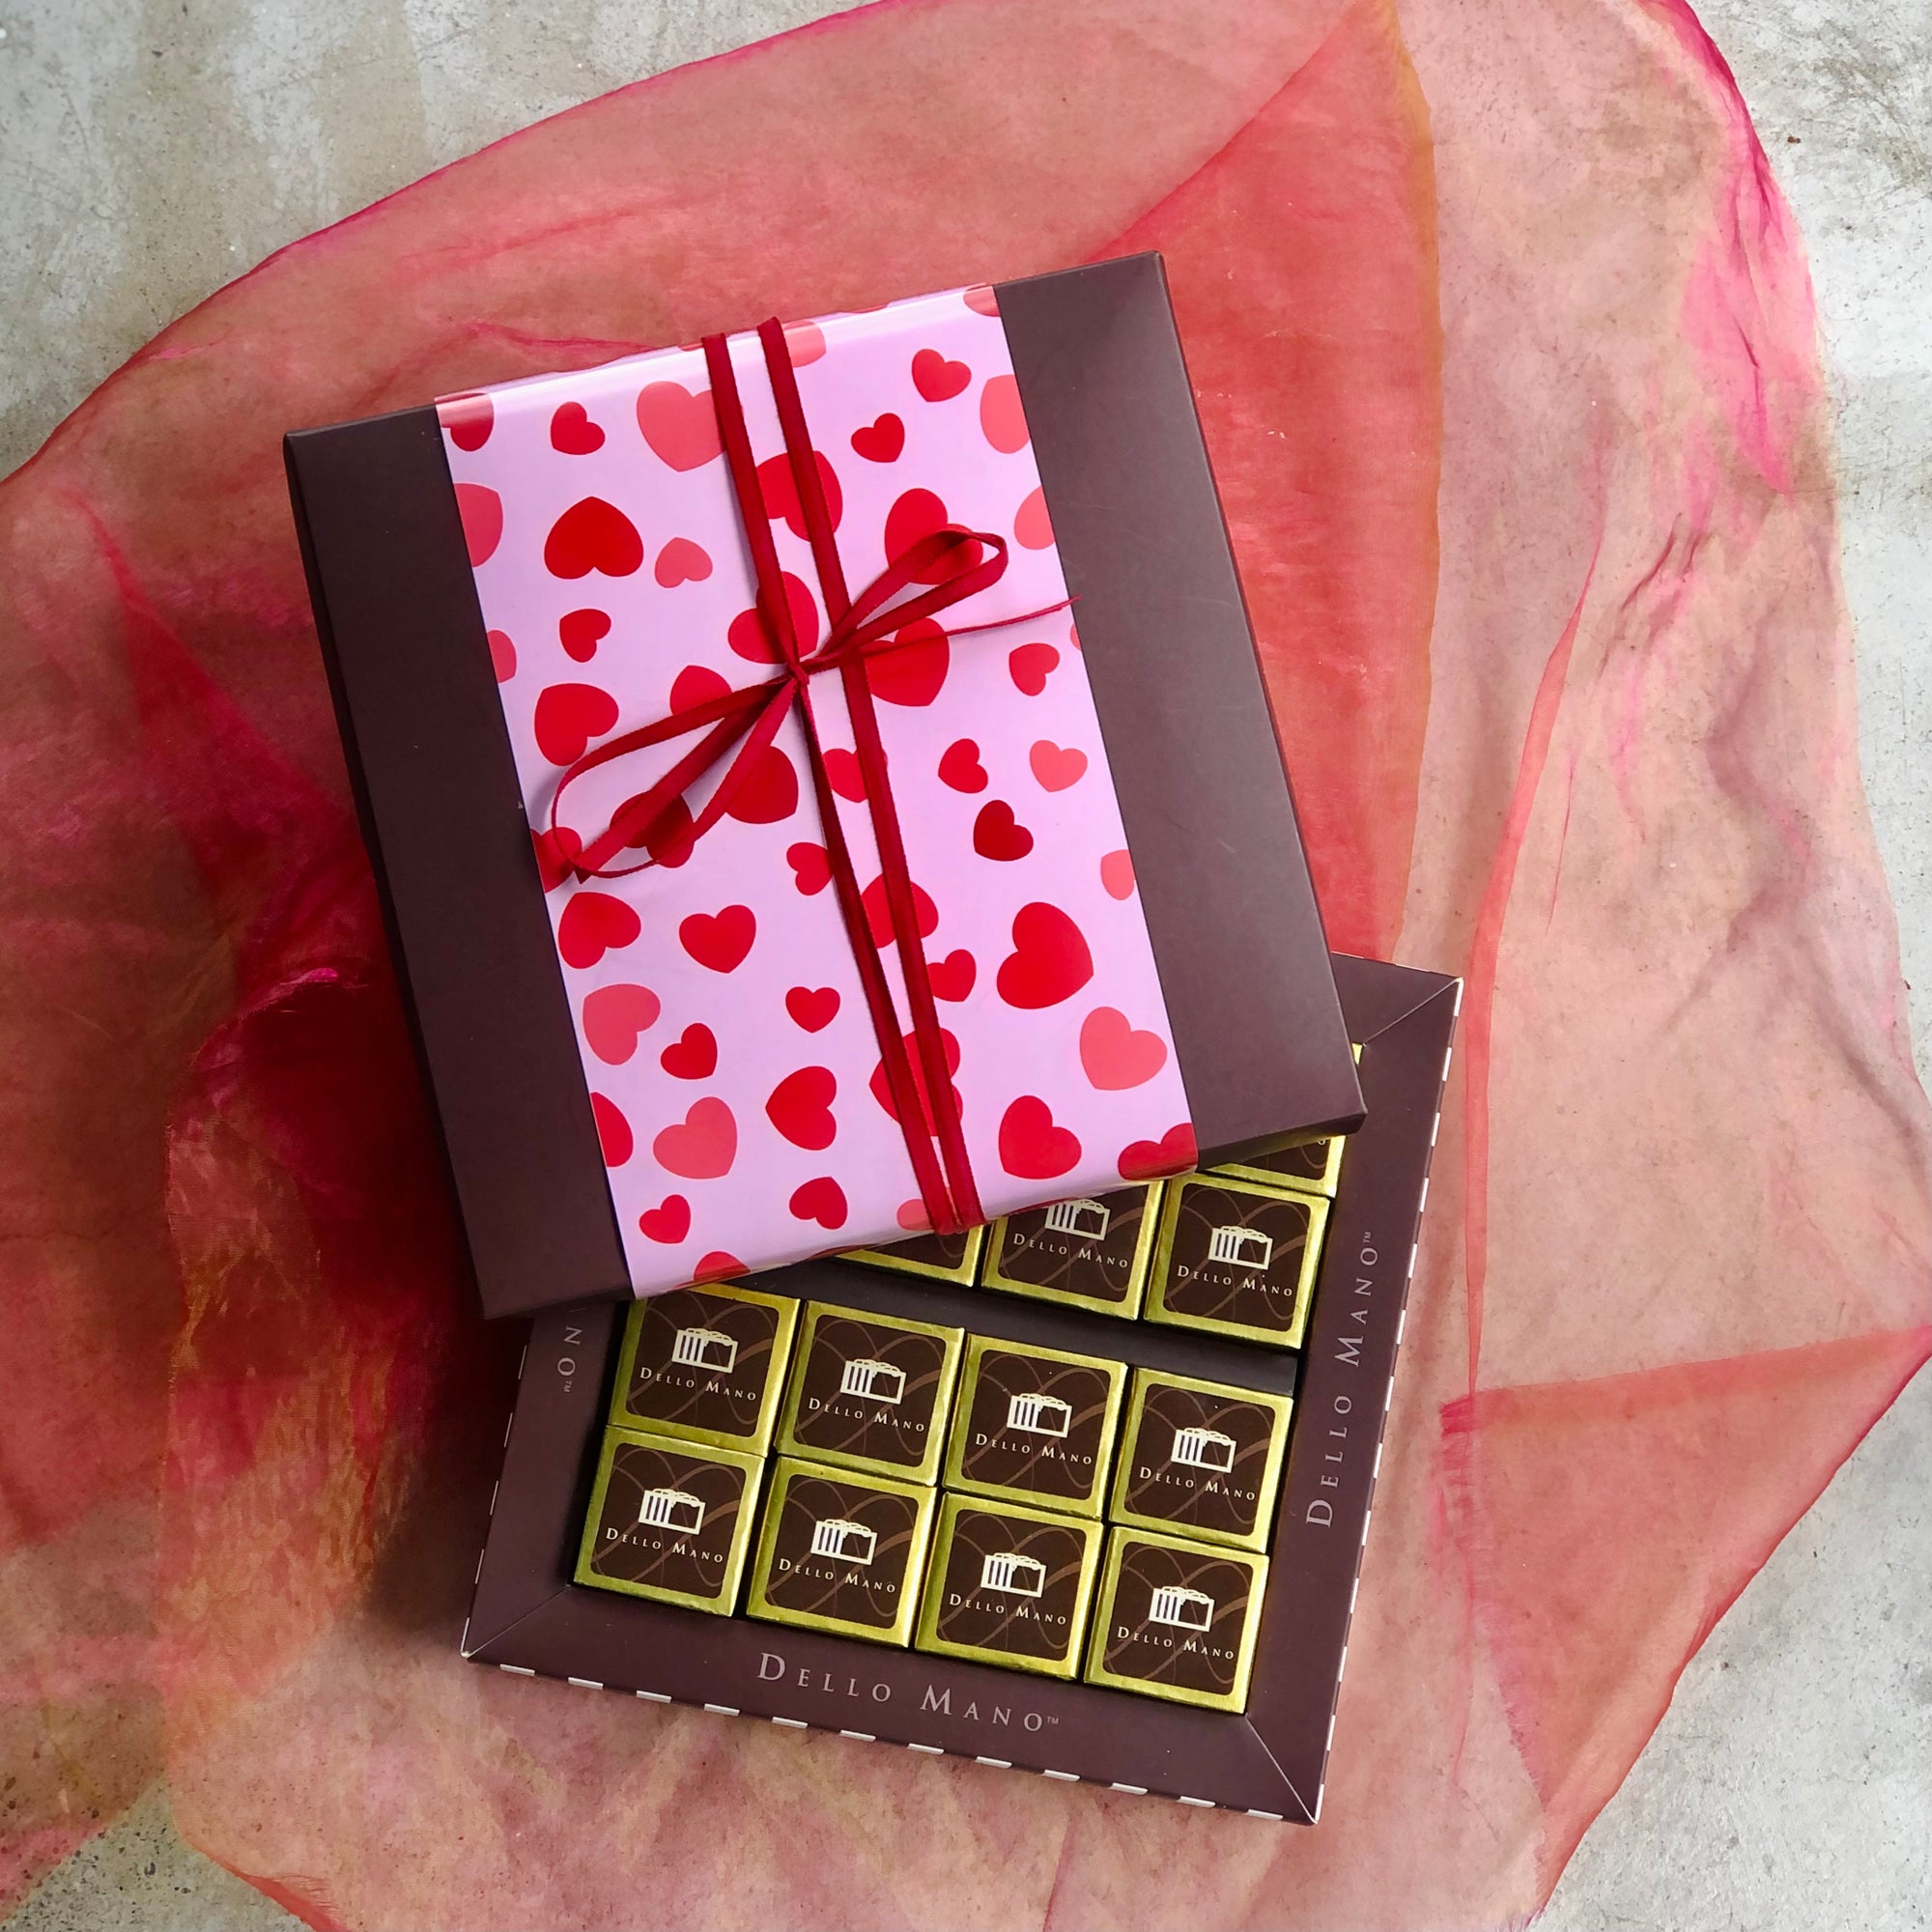 Dello Mano logo brownies in a Valentine Chocolate Gift Box and red ribbon tie